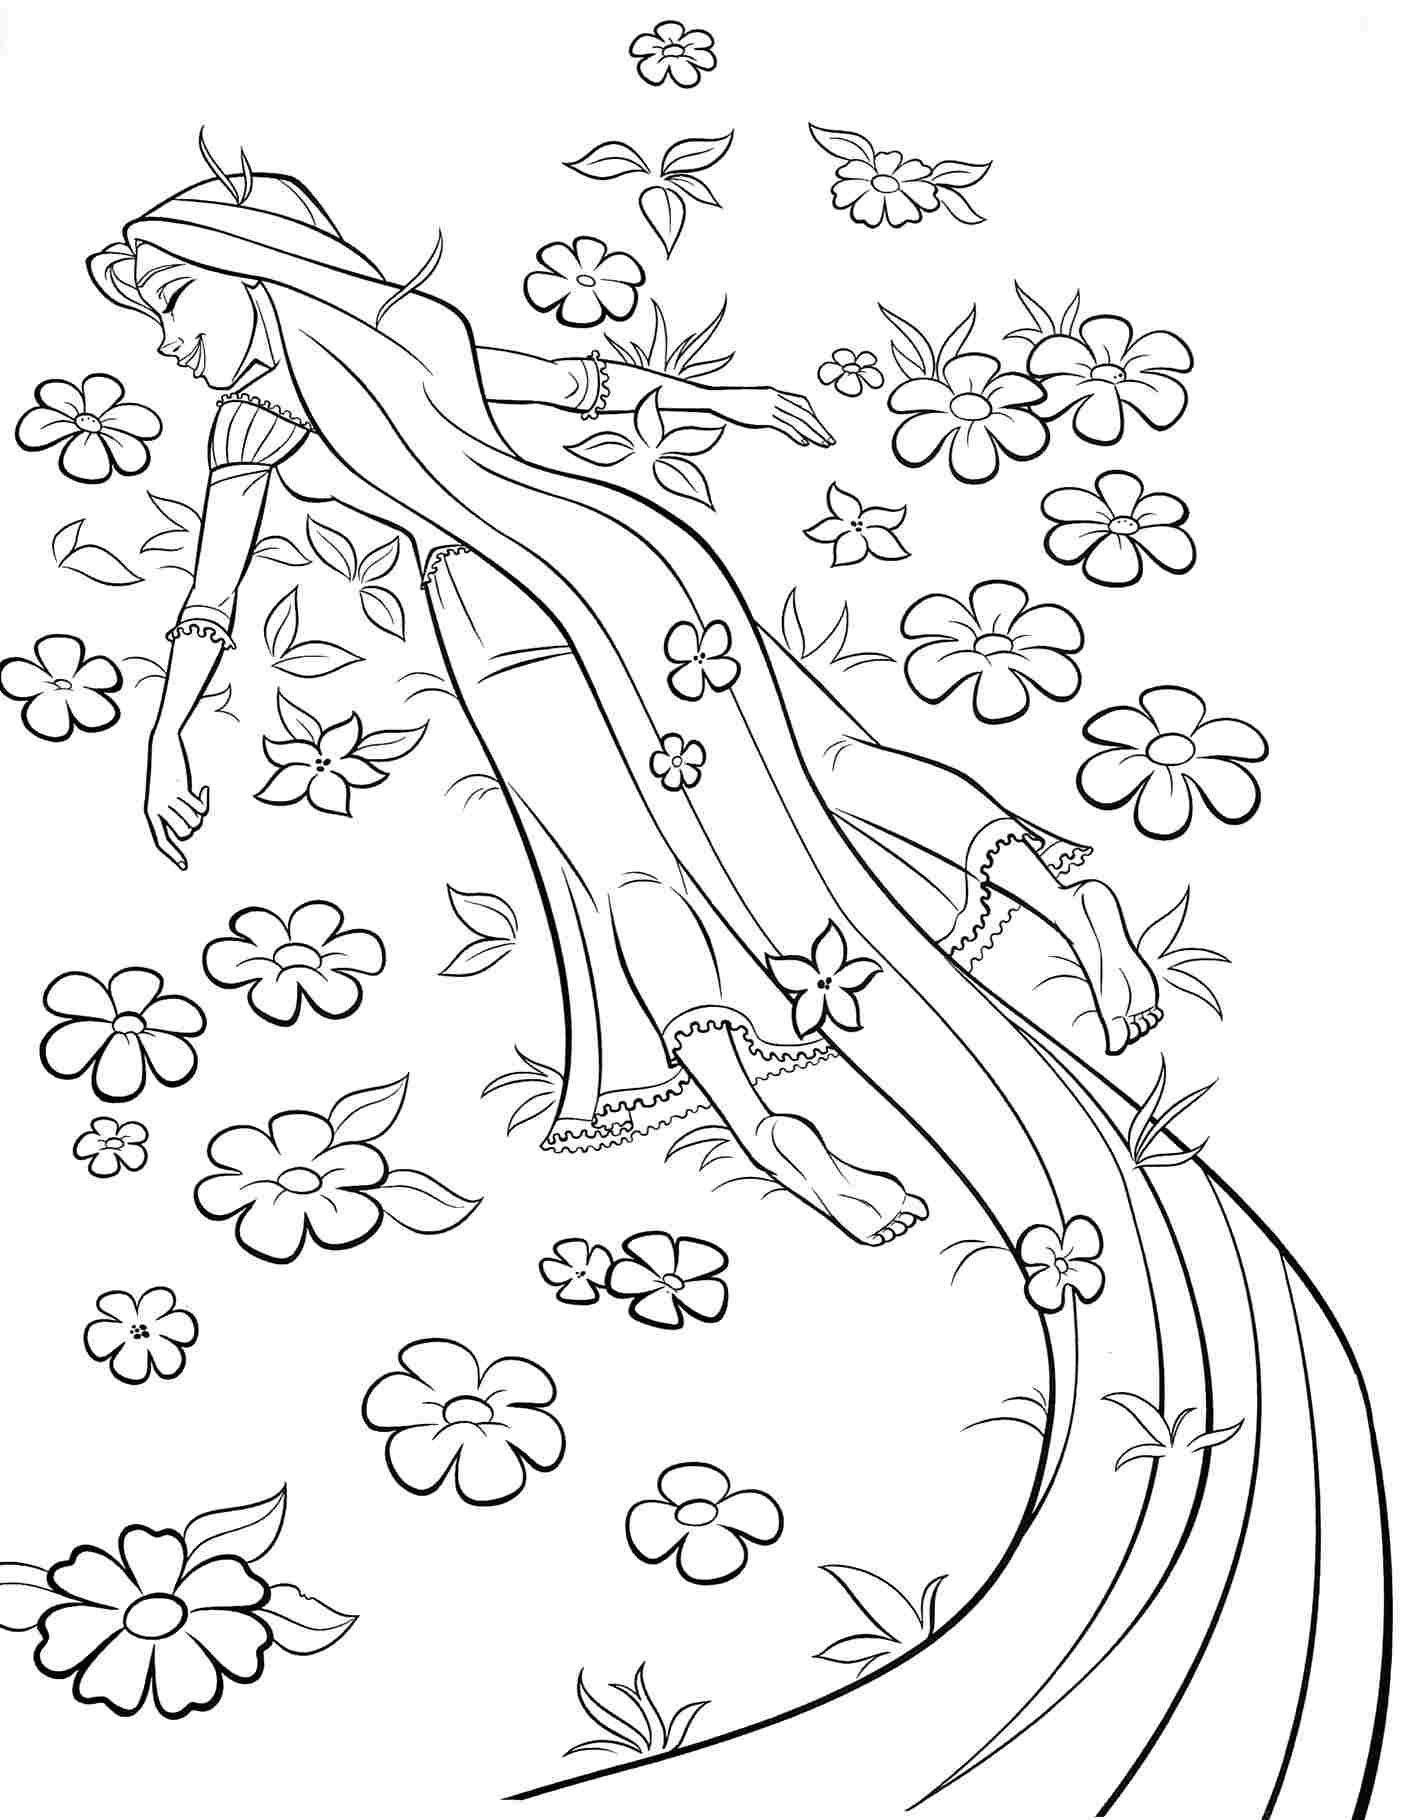 Disney princess coloring book for adults - Disney Tangled Coloring Pages Printable Disney Princess Rapunzel Colouring Pages Free For Boys Girls